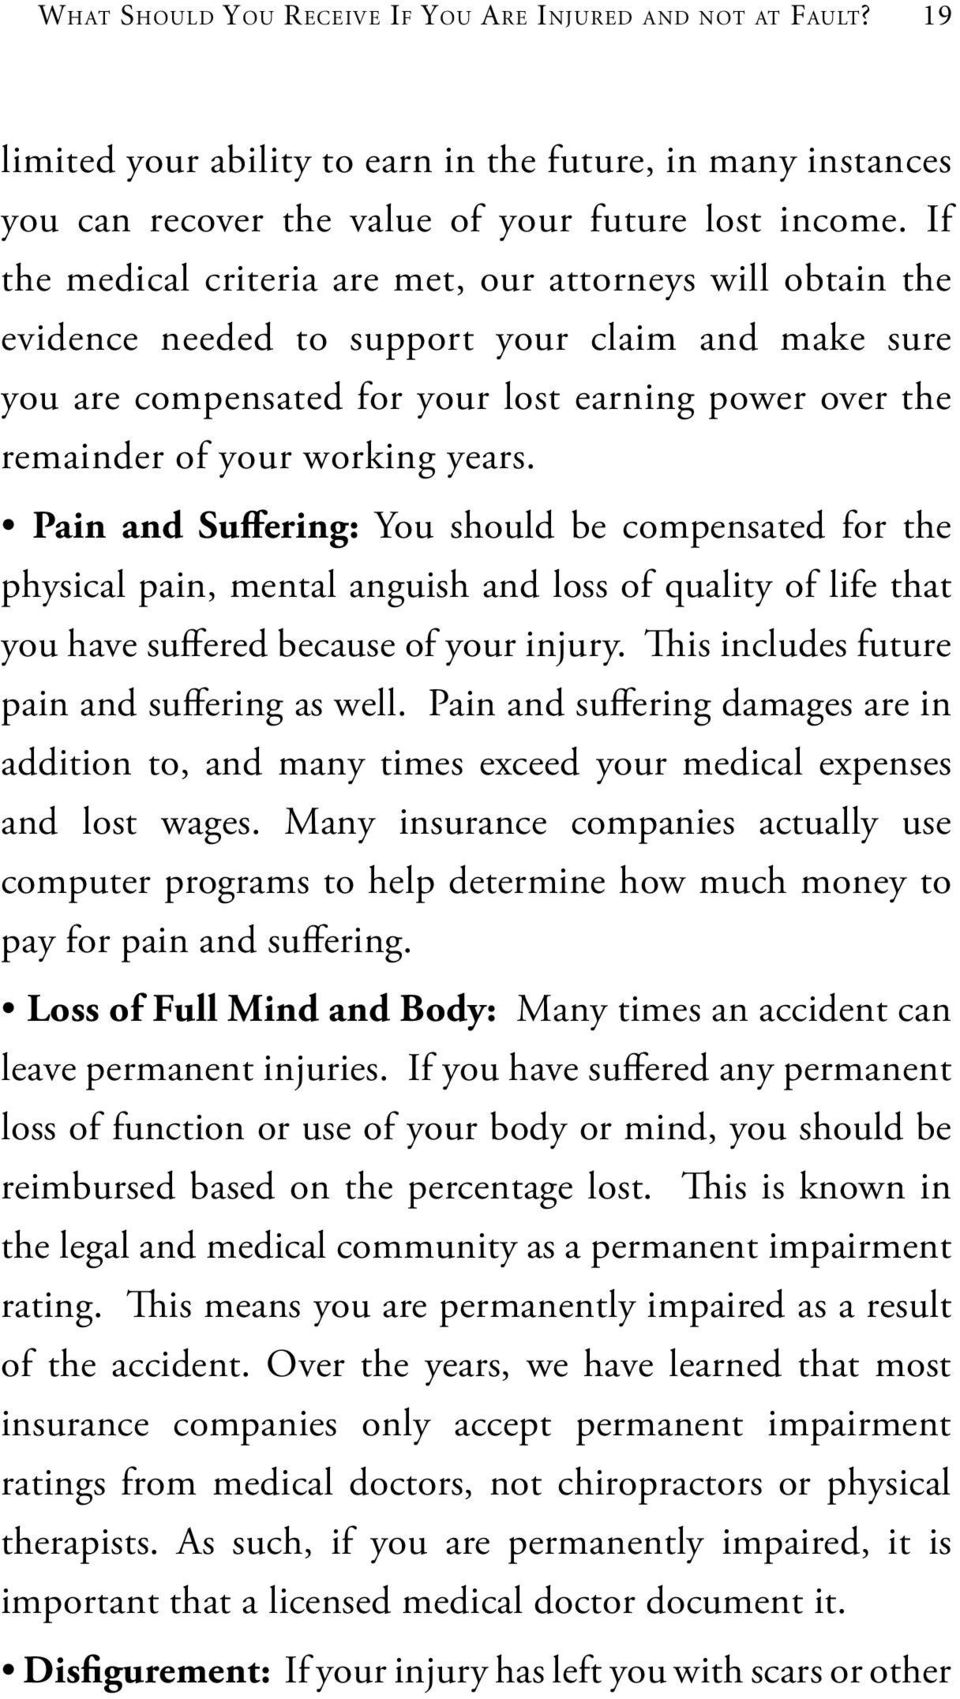 years. Pain and Suffering: You should be compensated for the physical pain, mental anguish and loss of quality of life that you have suffered because of your injury.